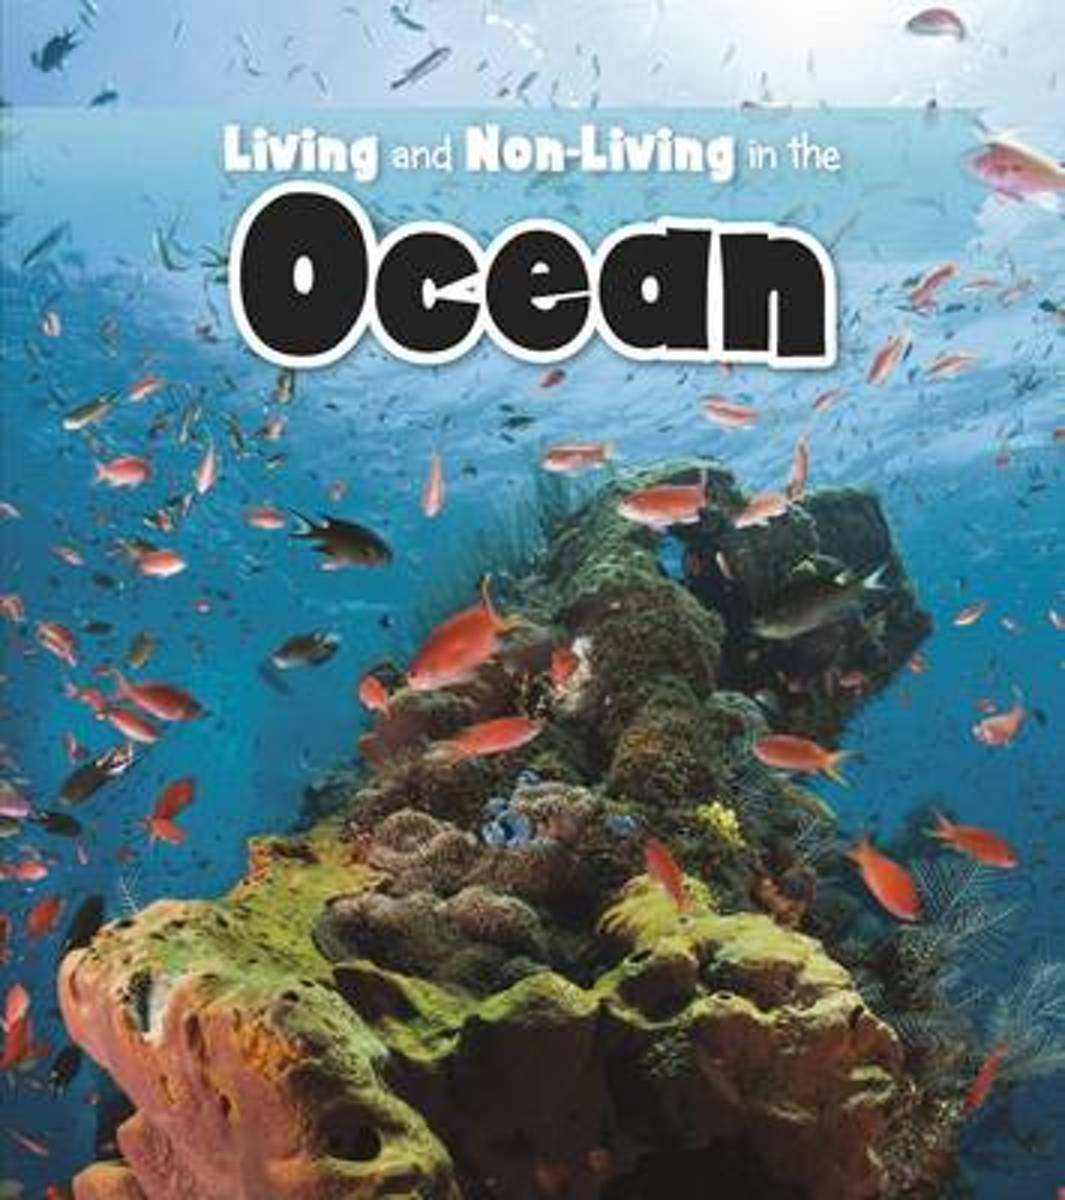 Living and Non-living in the Ocean